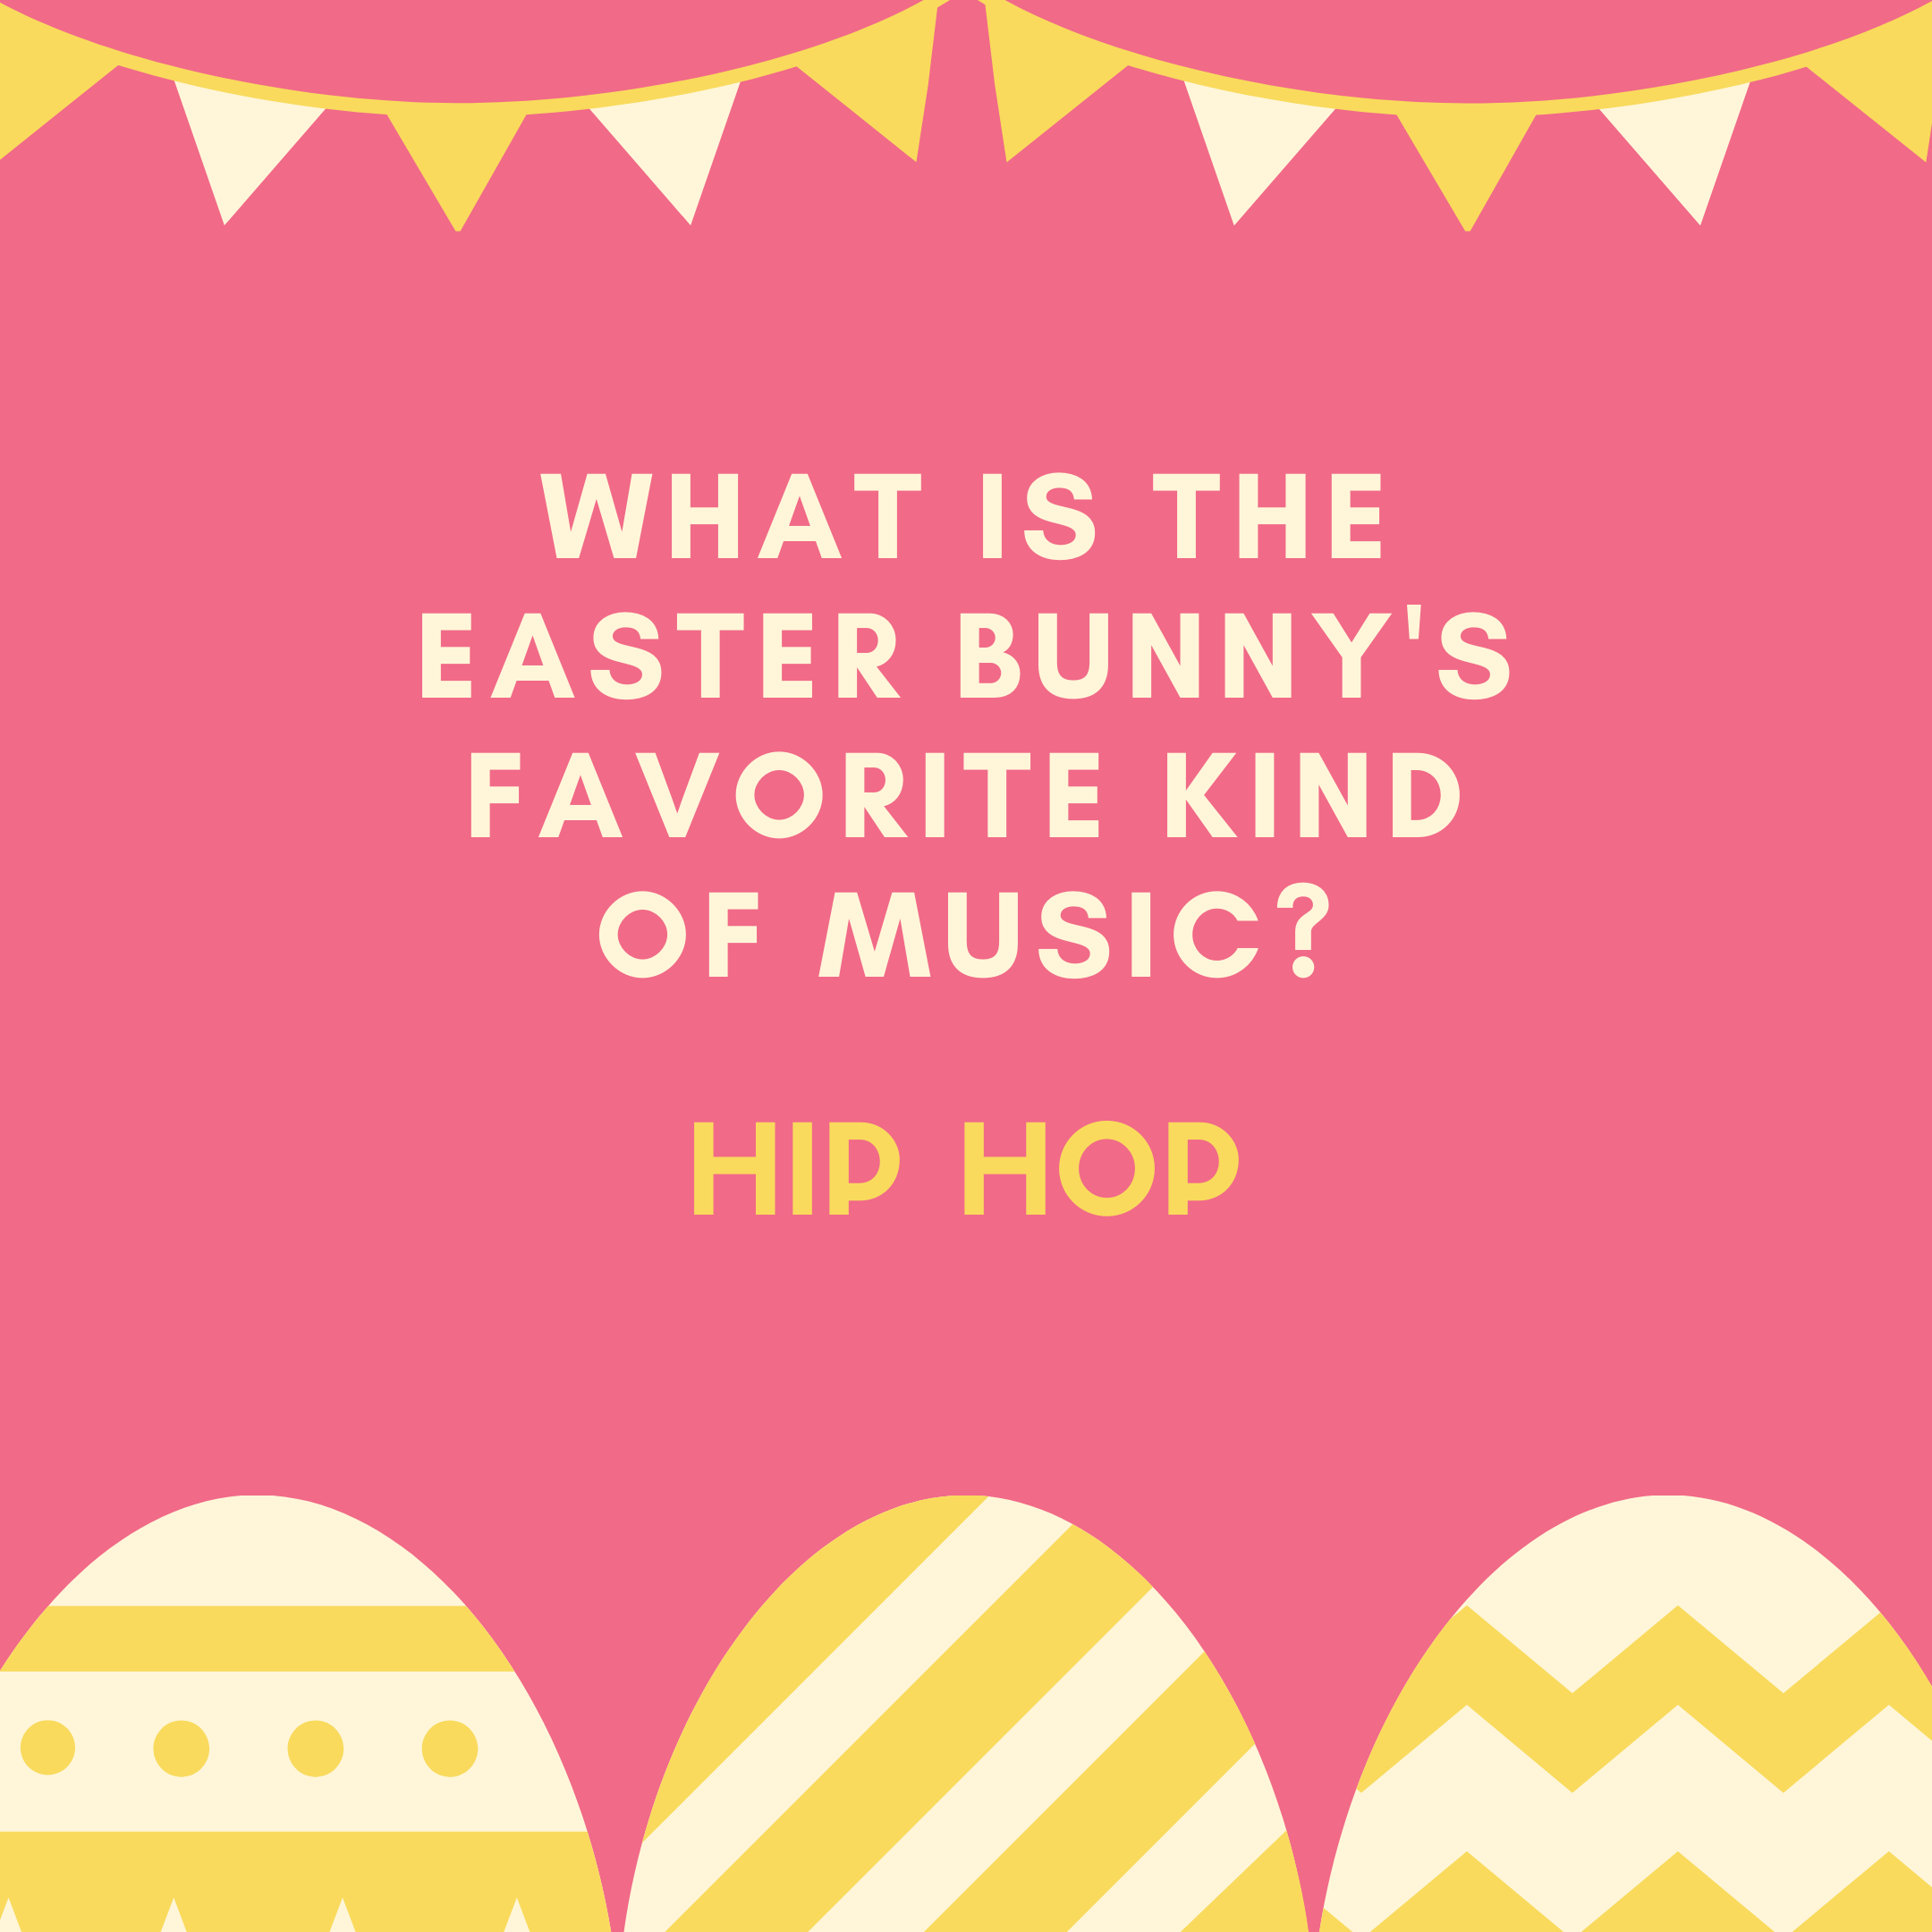 What is the Easter Bunny's favorite kind of music? Hip Hop